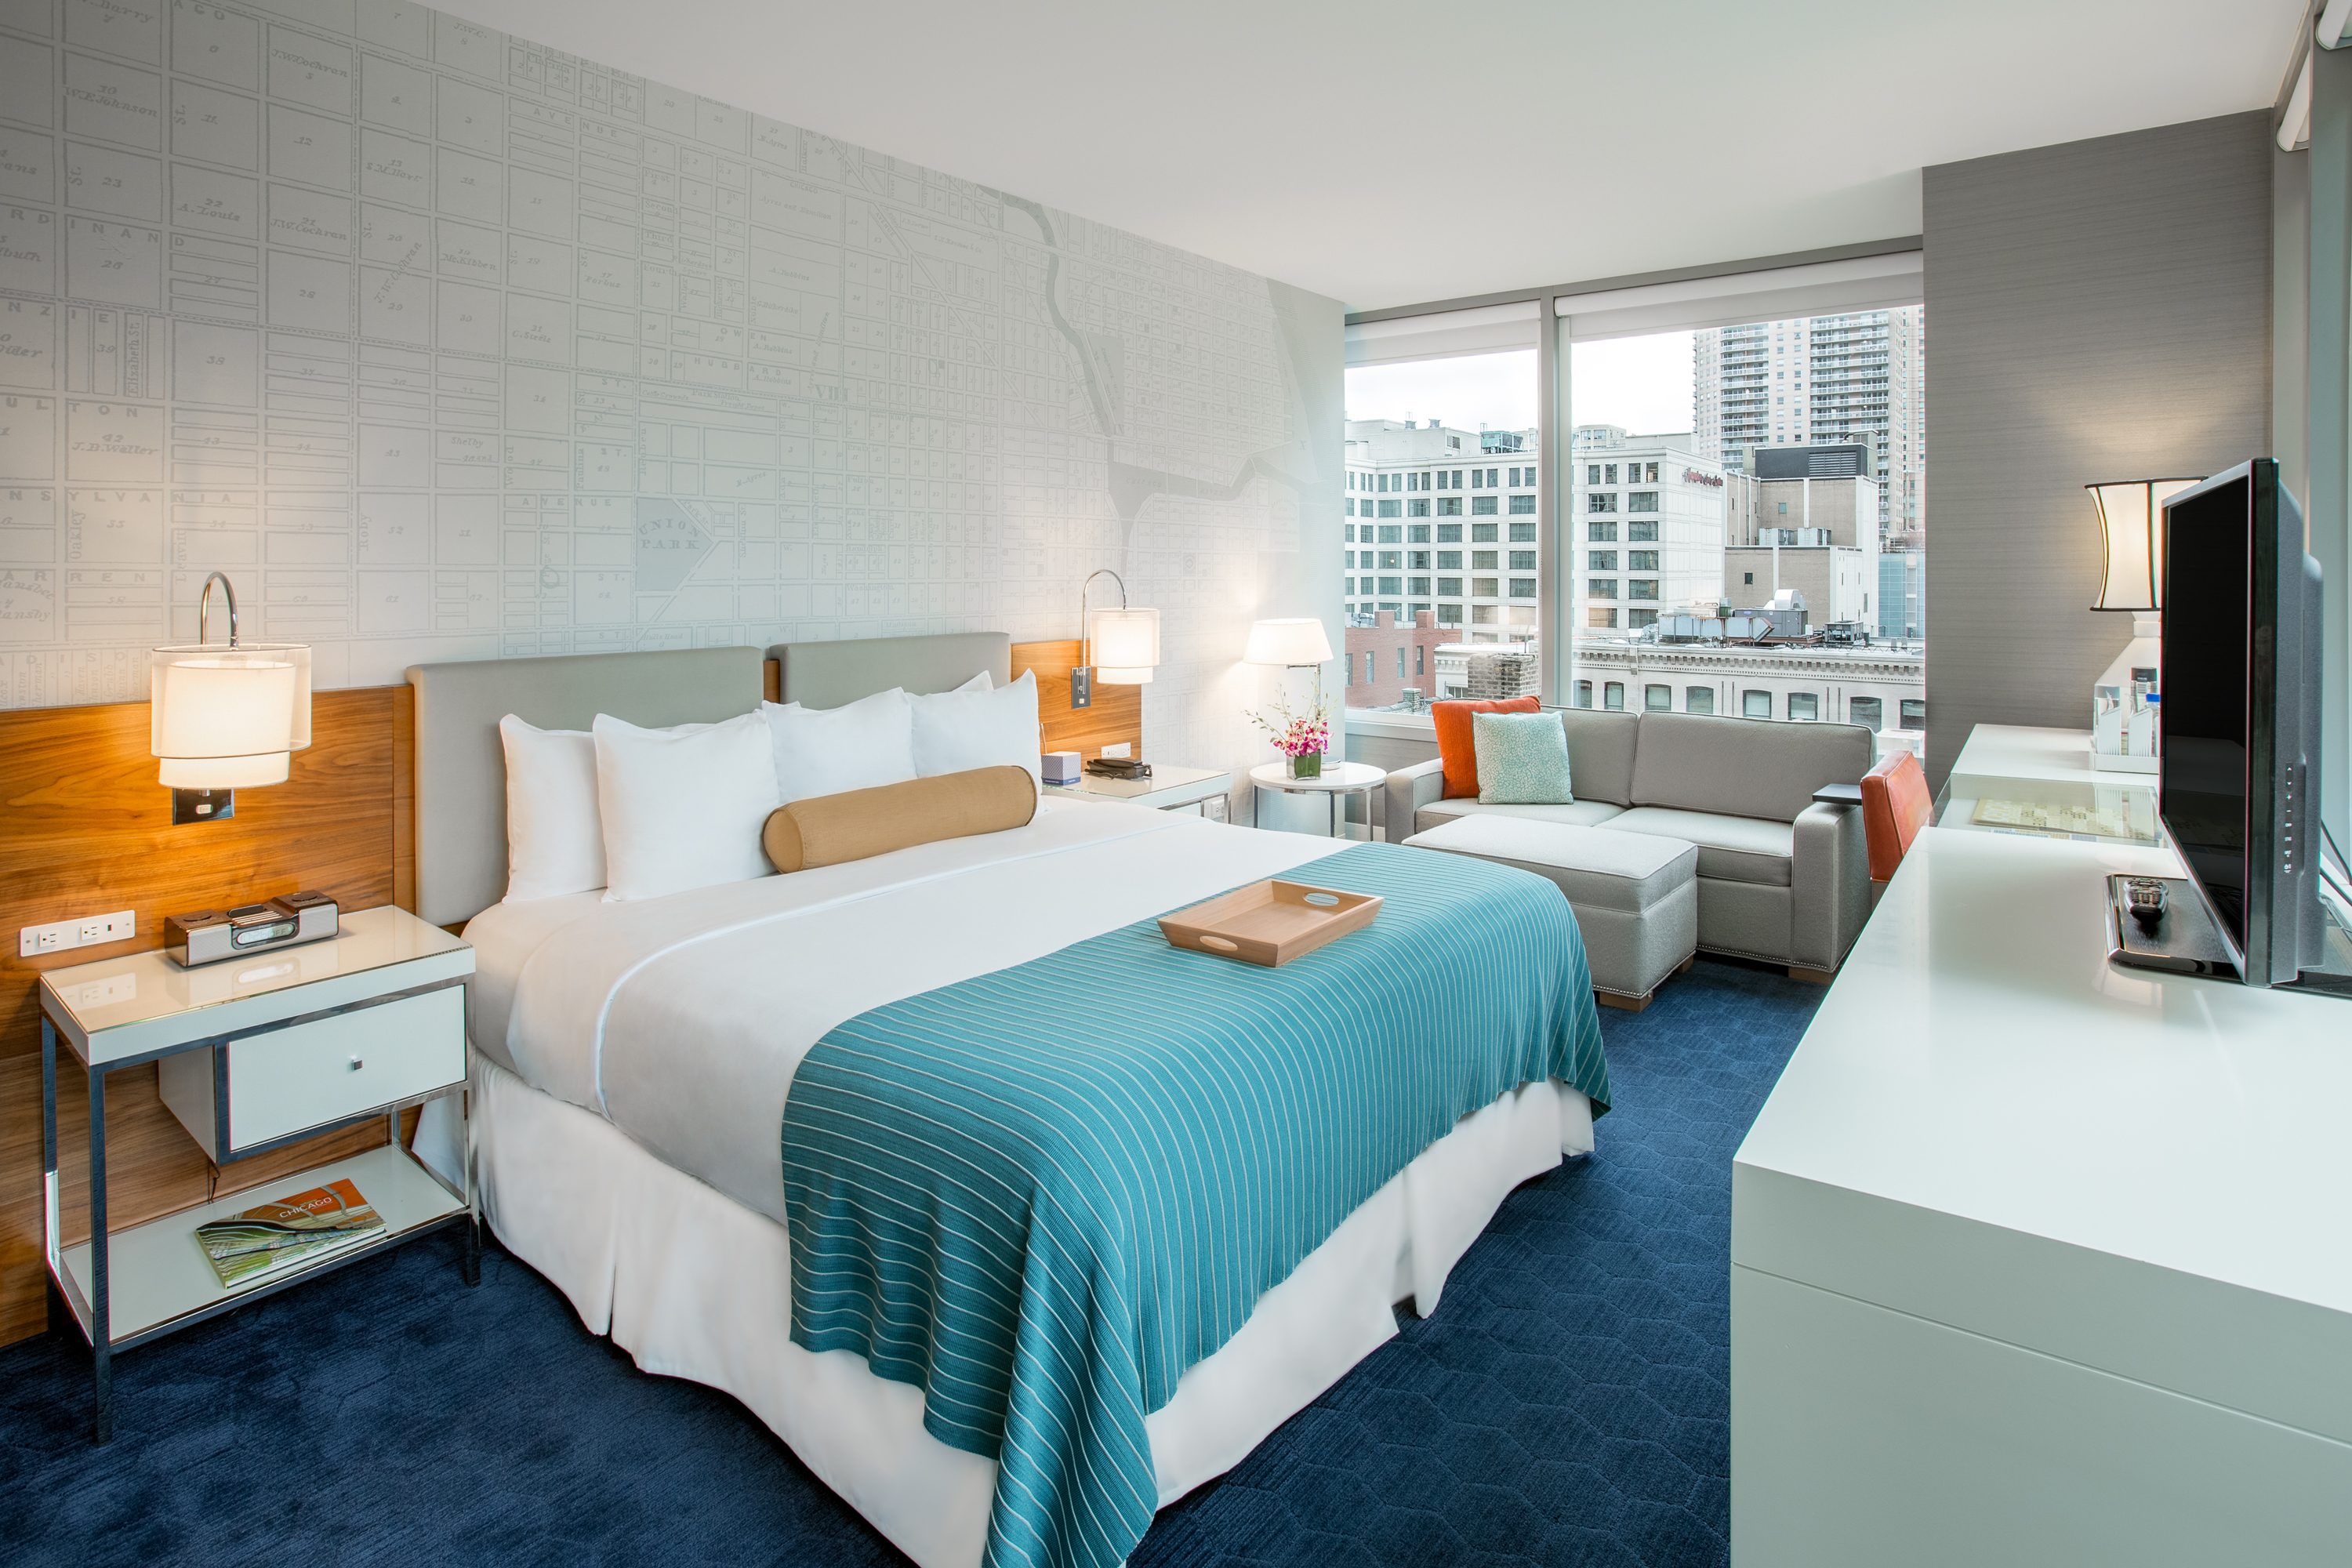 The Best Budget Hotels in Chicago